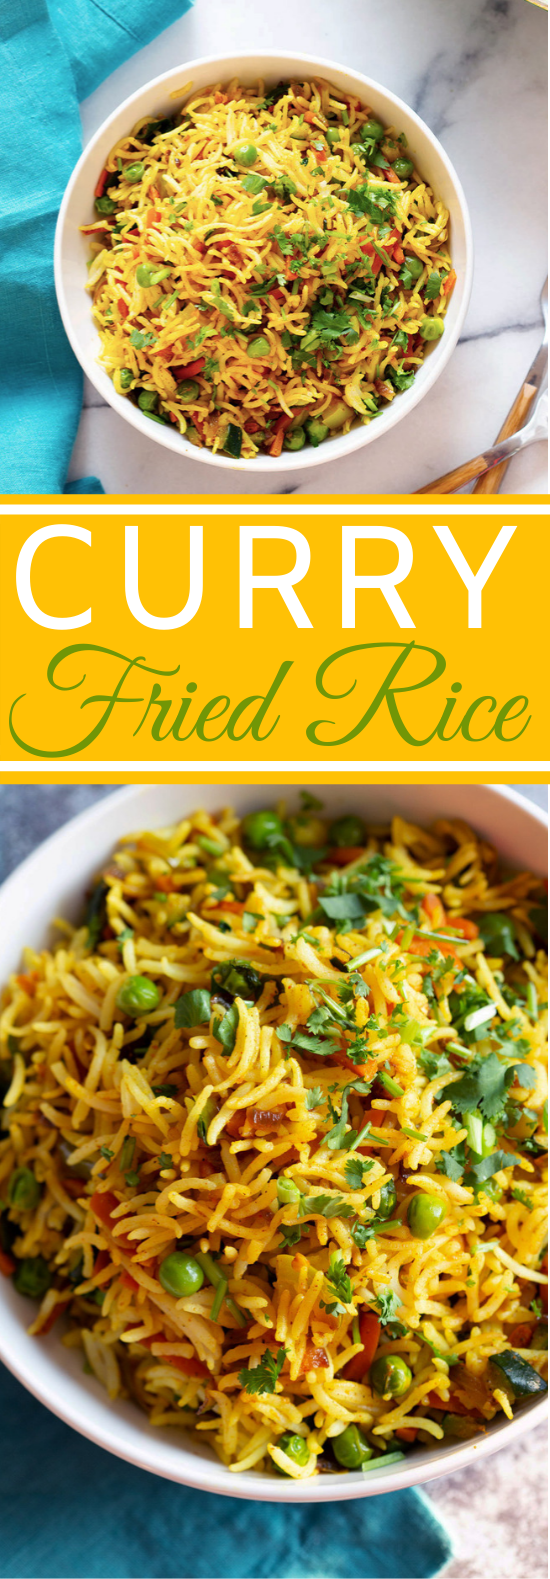 Curry Fried Rice #vegetarian #vegan #dinner #recipes #meatless